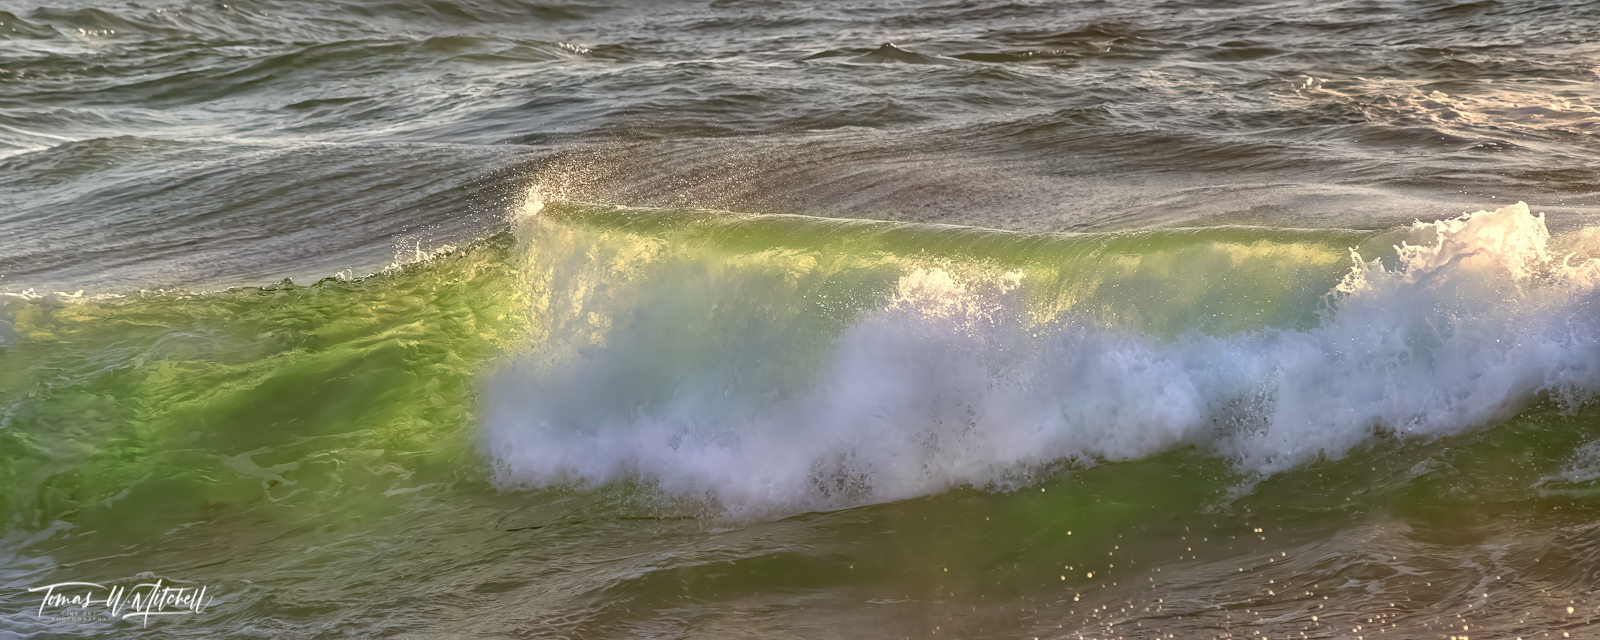 limited edition, fine art prints, pacific grove, california, waves, shore, water, photographing, photograph, ocean, panoramic, green, photo